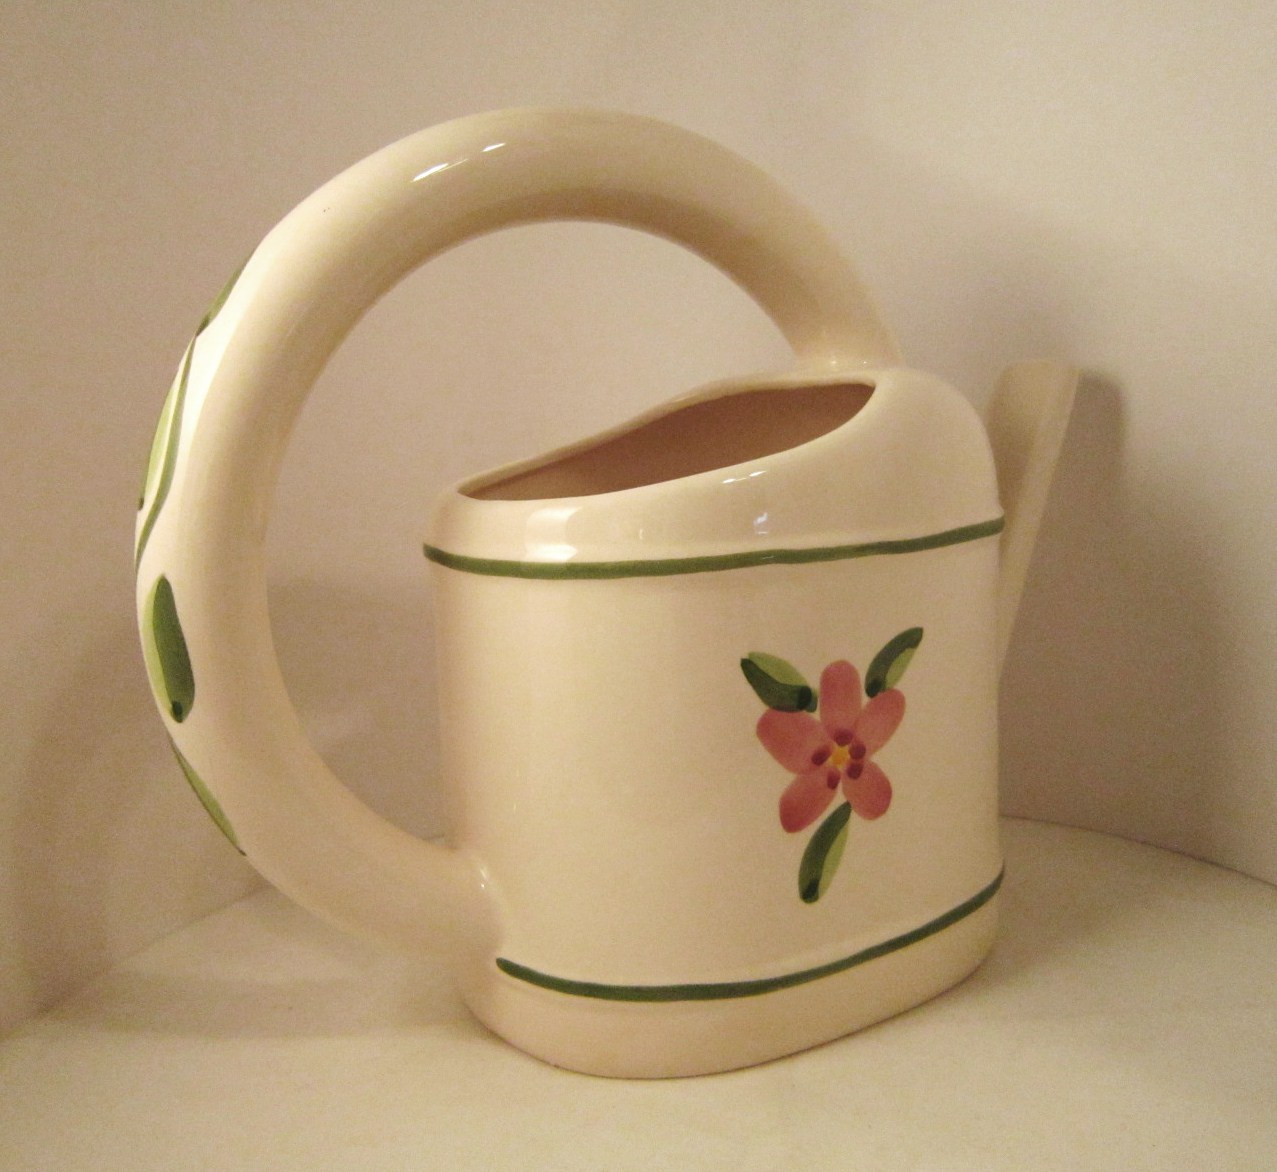 Watering Can and Flower Pots Ceramic 4 piece Set Hand Painted Planters